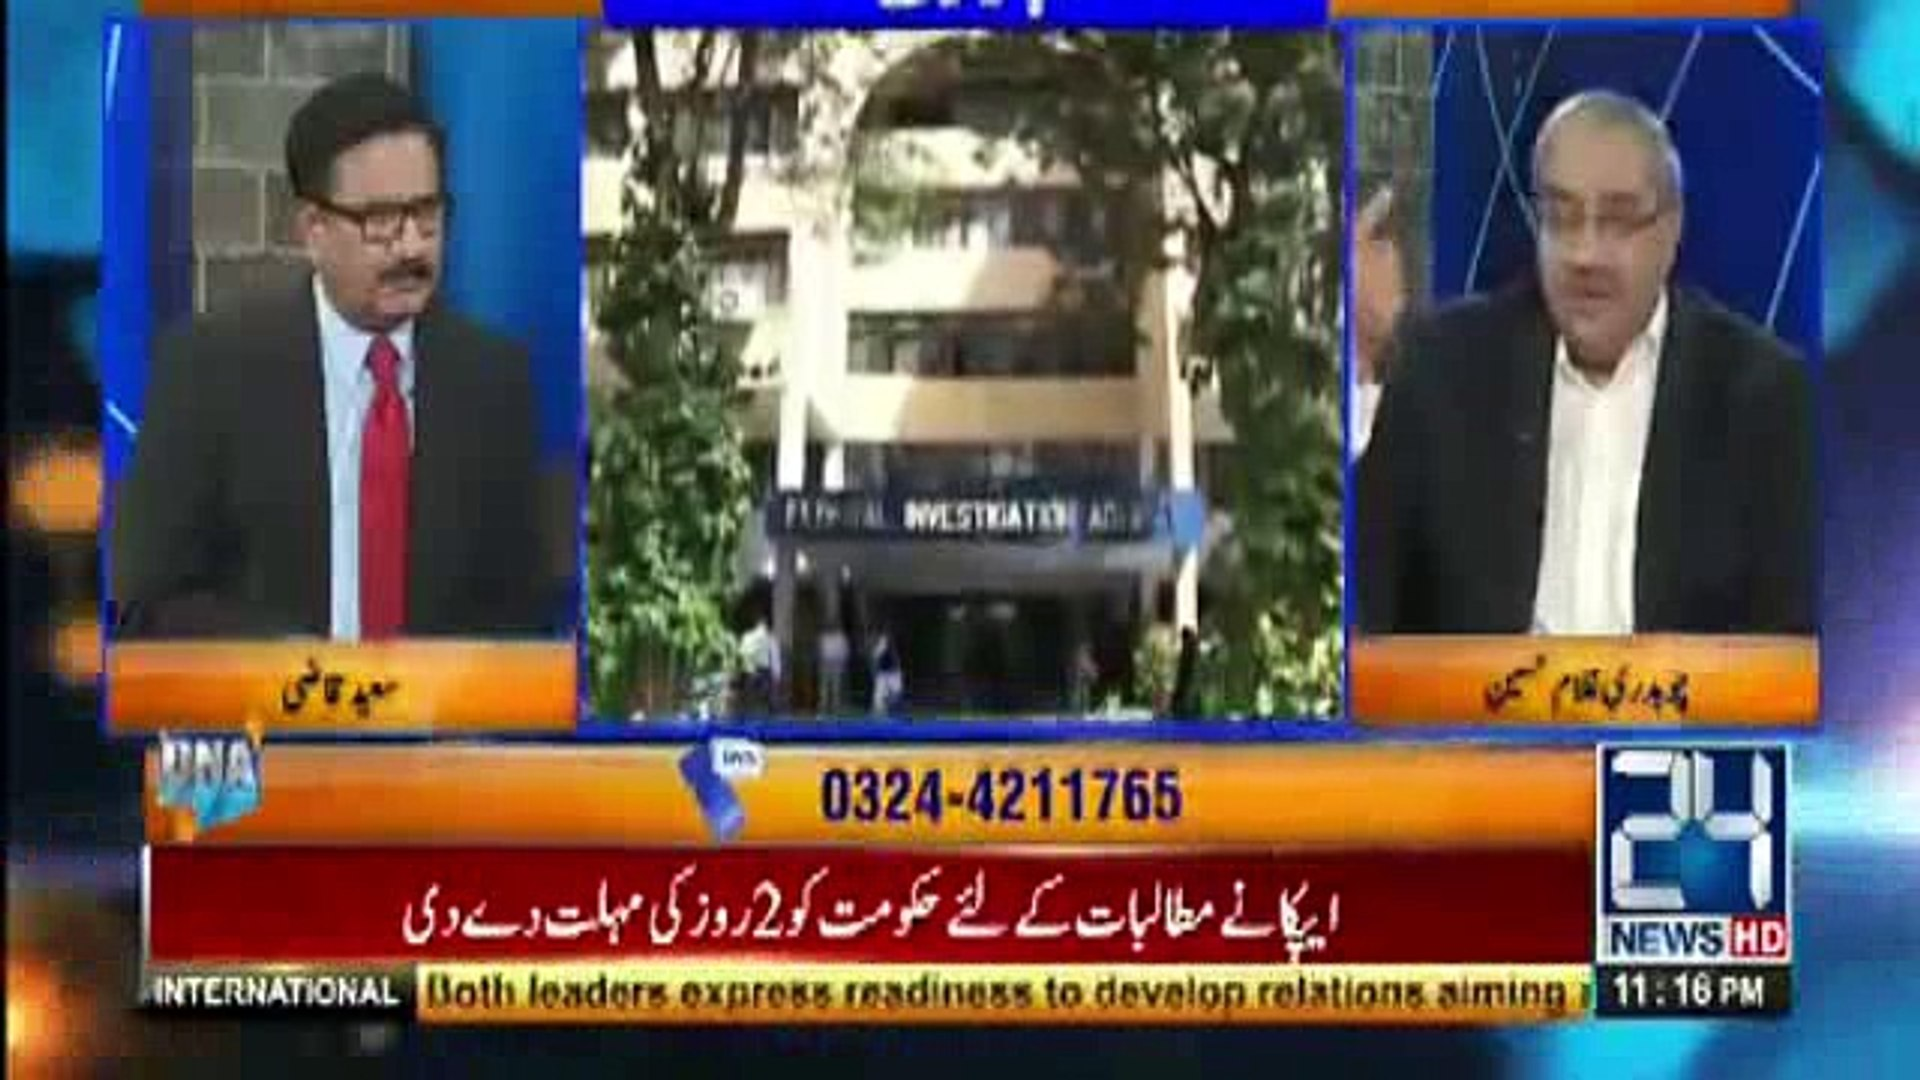 Chaudhry Ghulam Hussain Reveals The Inside Story Of Panama JIT - What is Going to Happen On 22nd May